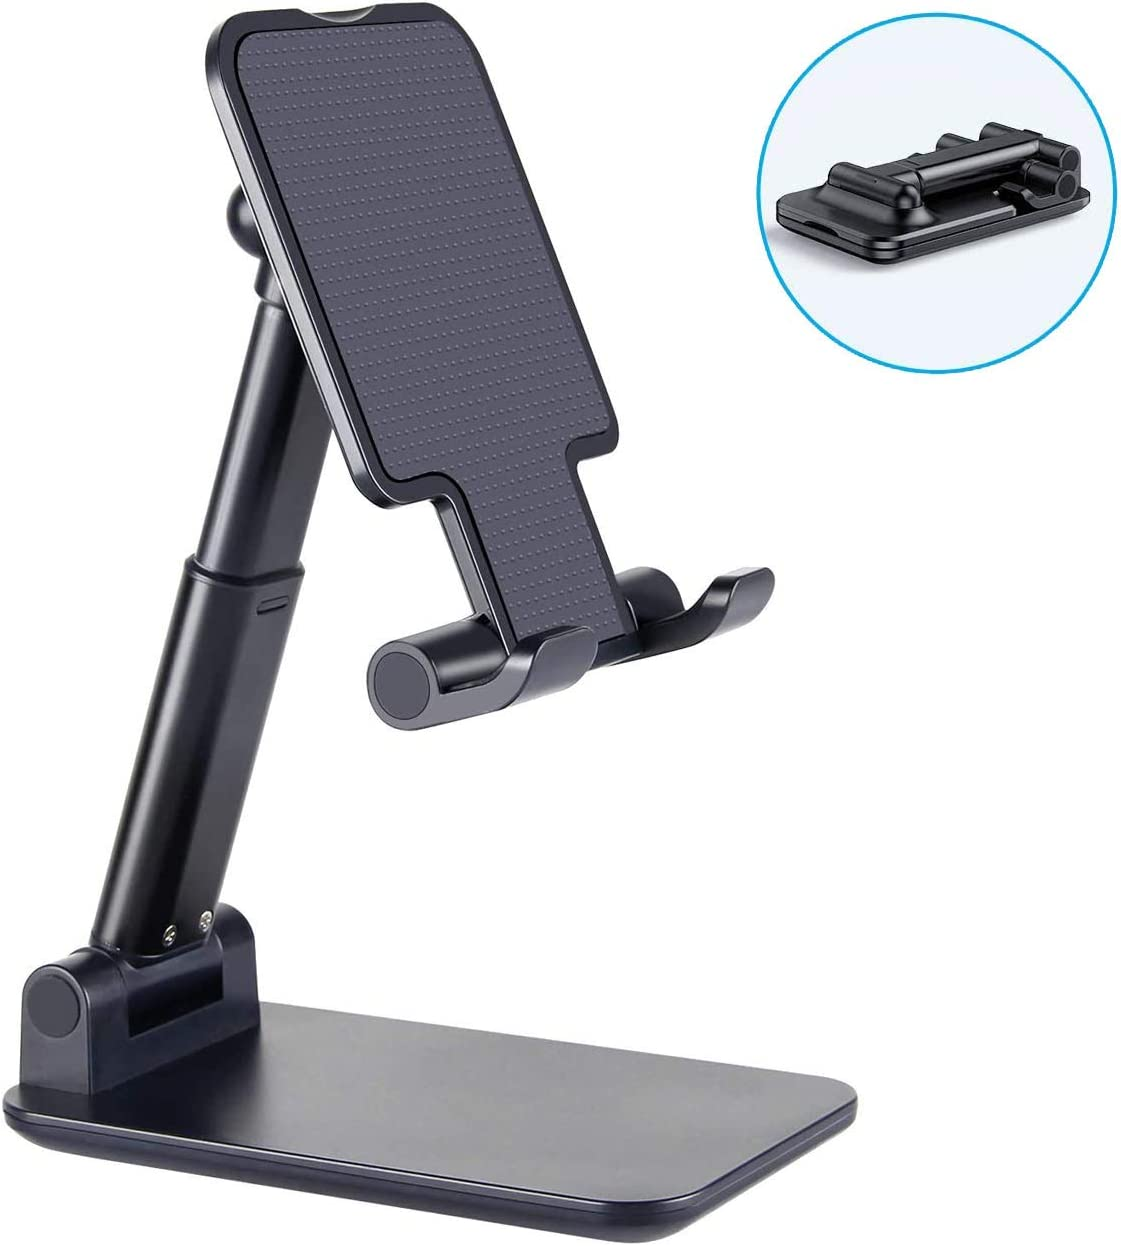 "Cell Phone Stand, Fully Foldable, Adjustable Desktop Phone Holder Cradle Tablet Stand Compatible with Smartphone/ iPad Mini/ Nintendo Switch/ Kindle/ Tablet (4-11"")"